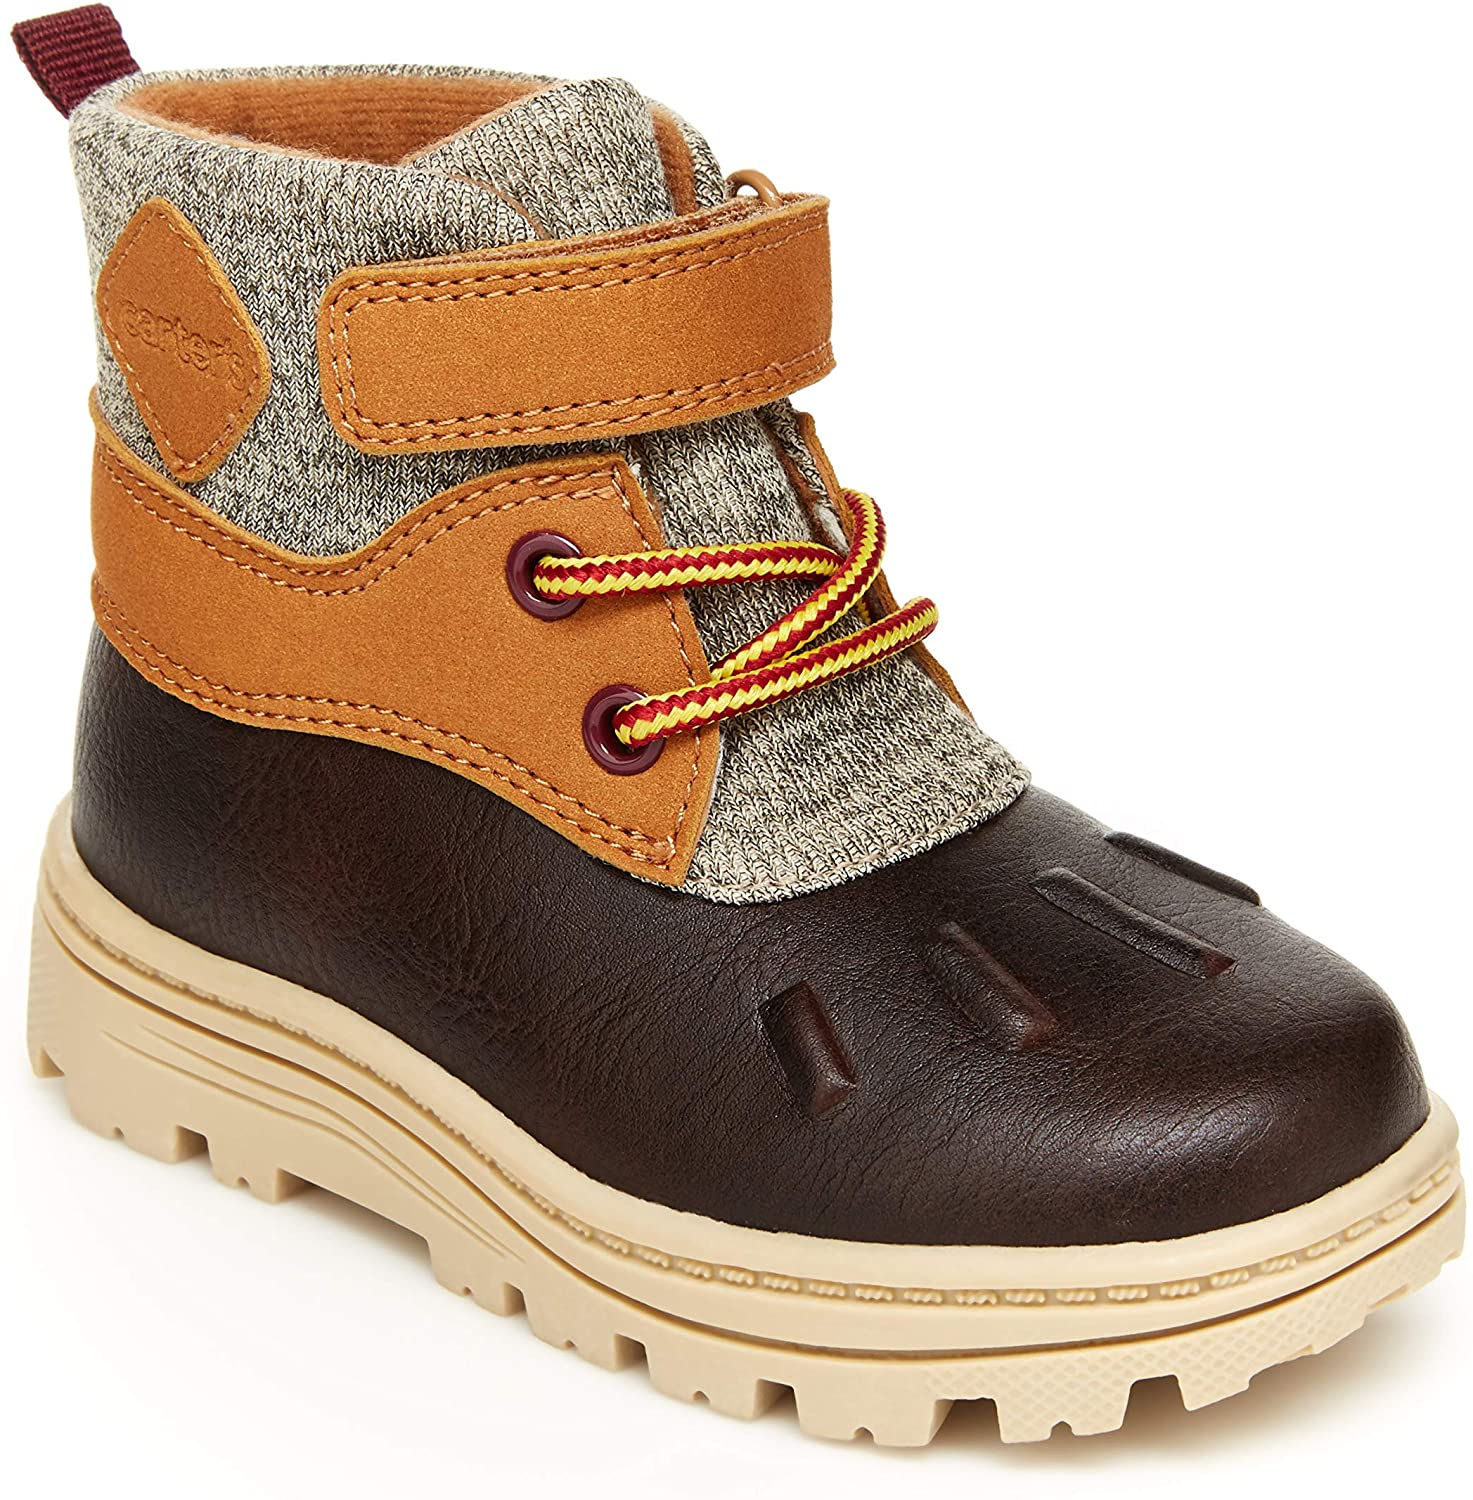 Carter's Kids Boot